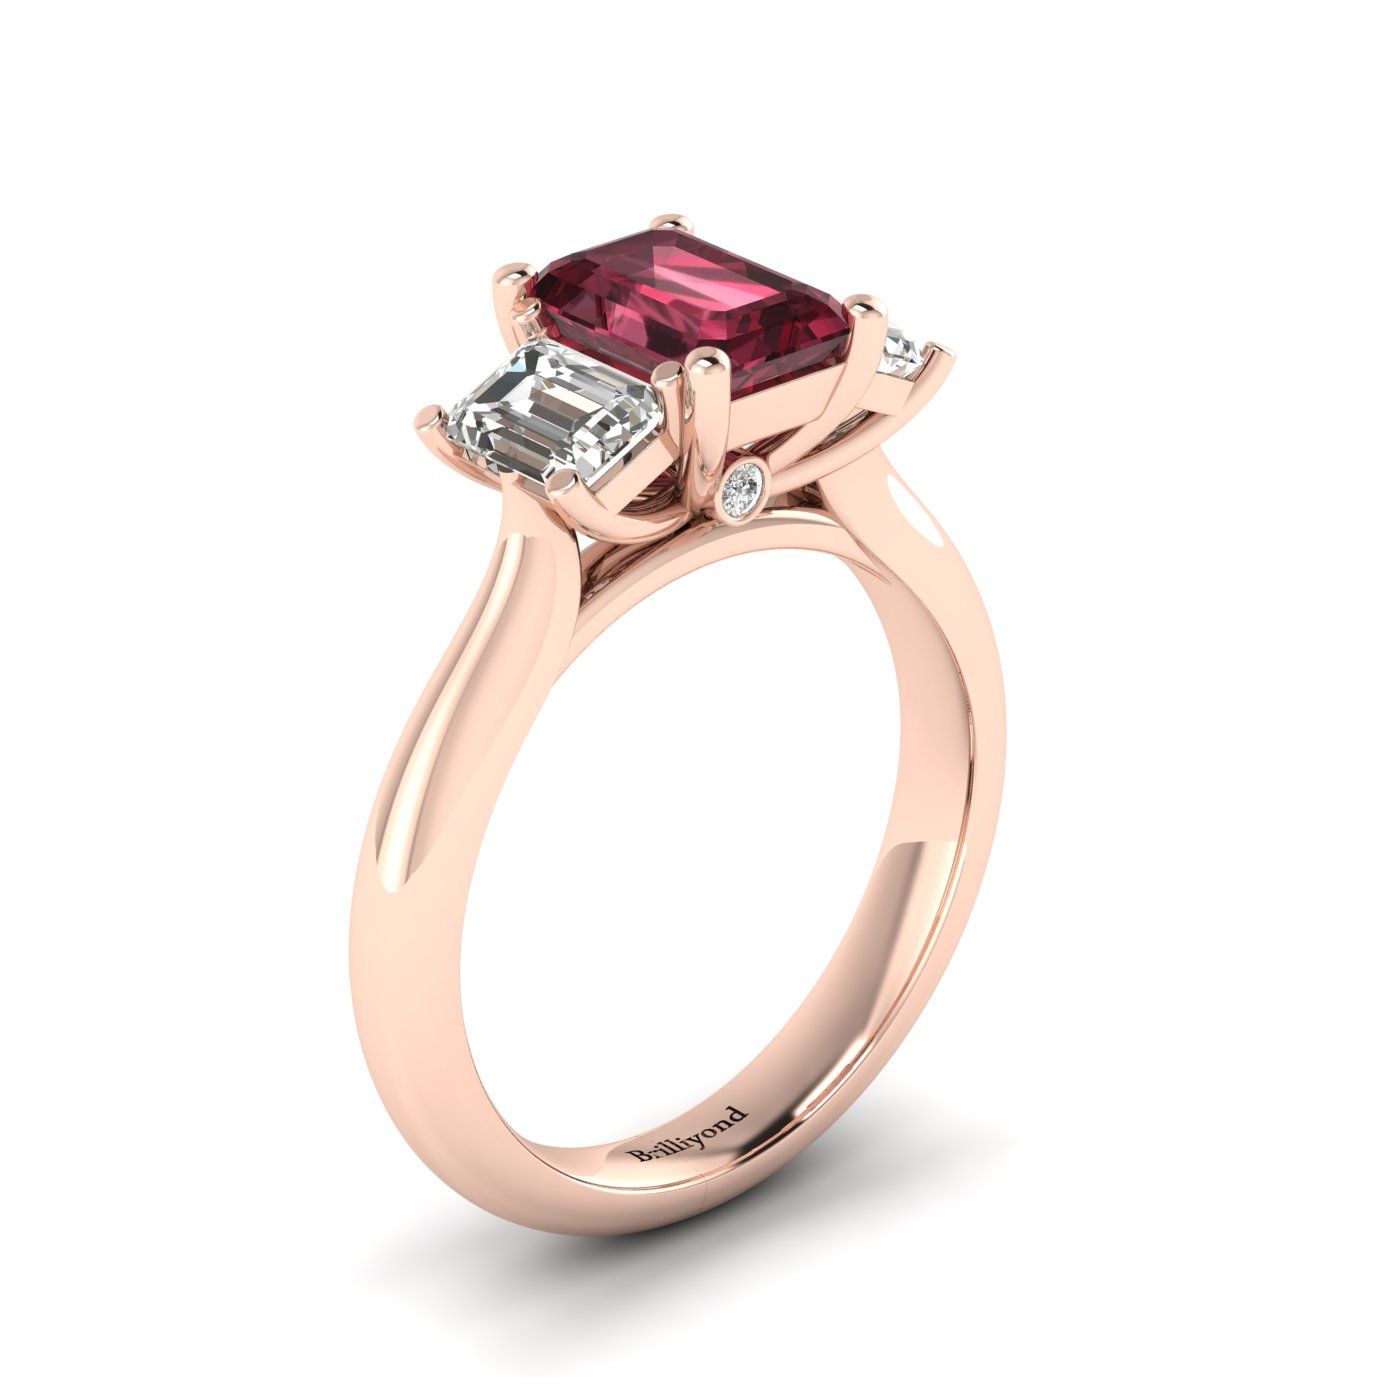 new rh jewelry engagement blue studio rings design product rhodolite hampshire richters topaz garnet top ring londonderry